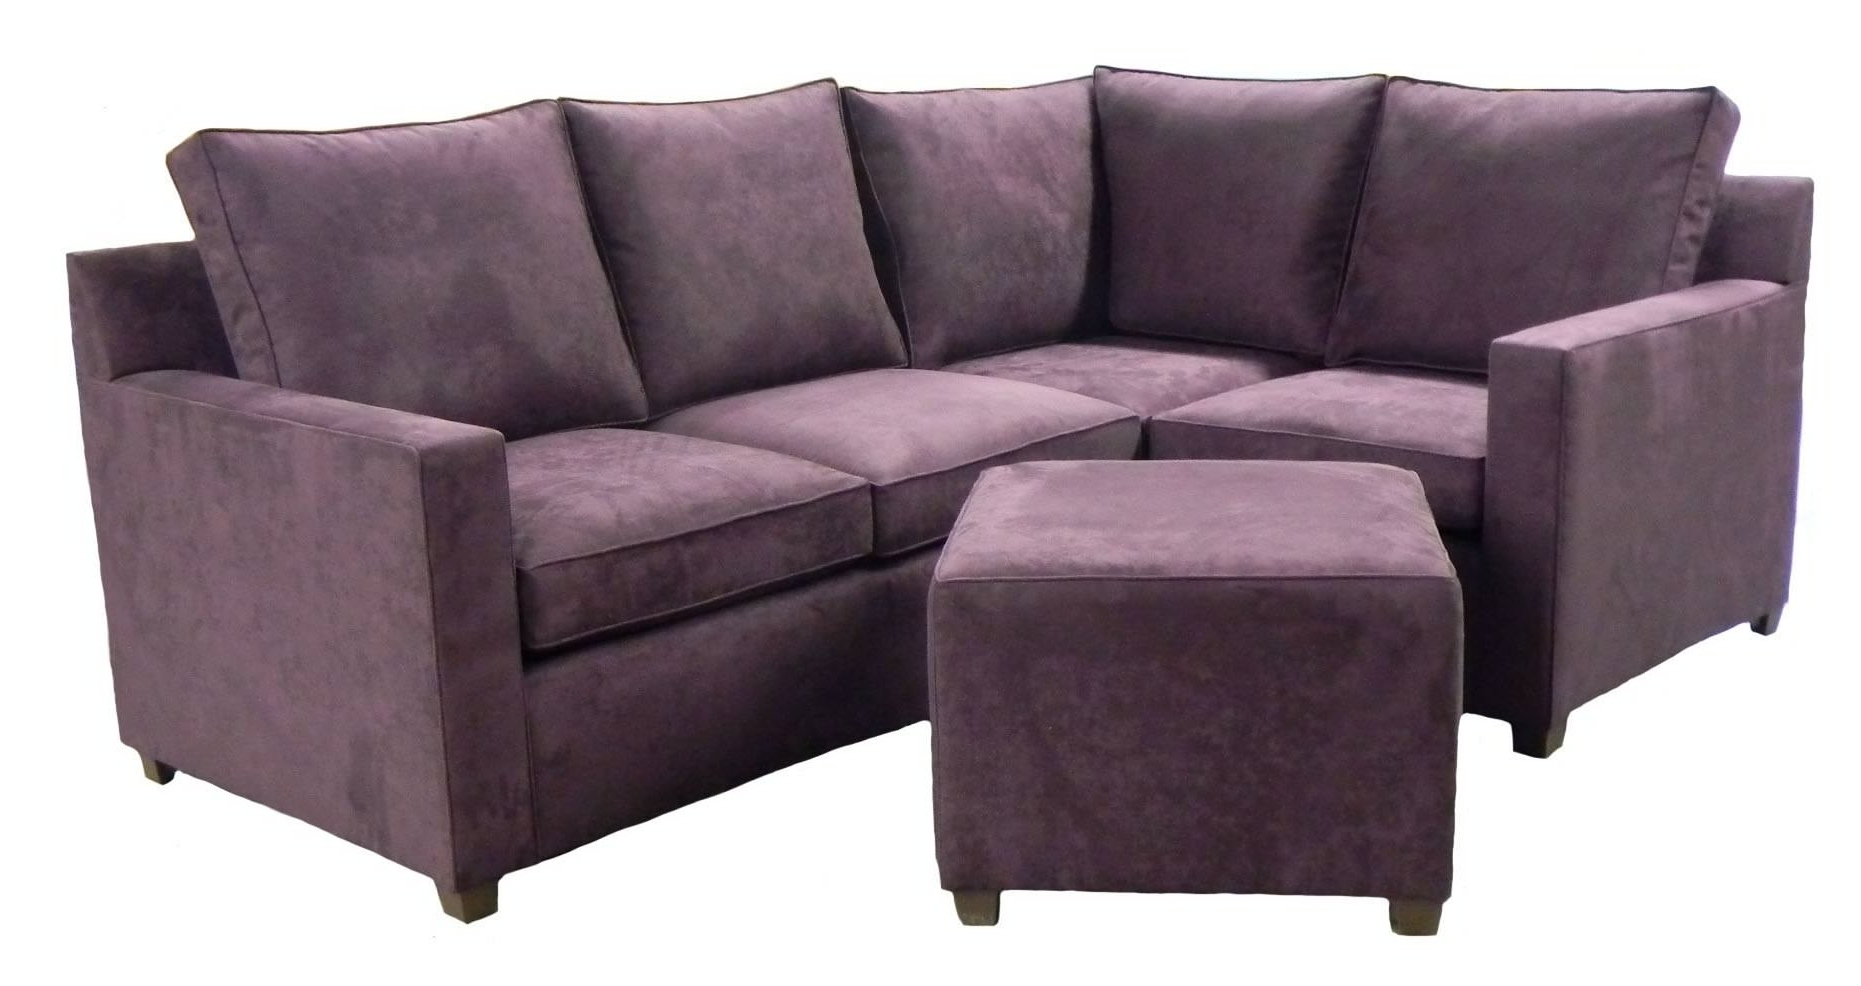 Best And Newest Apartment Size Sofas For Sectional Sofa Design: Apartment Size Sectional Sofa Bed Chaise (View 9 of 20)